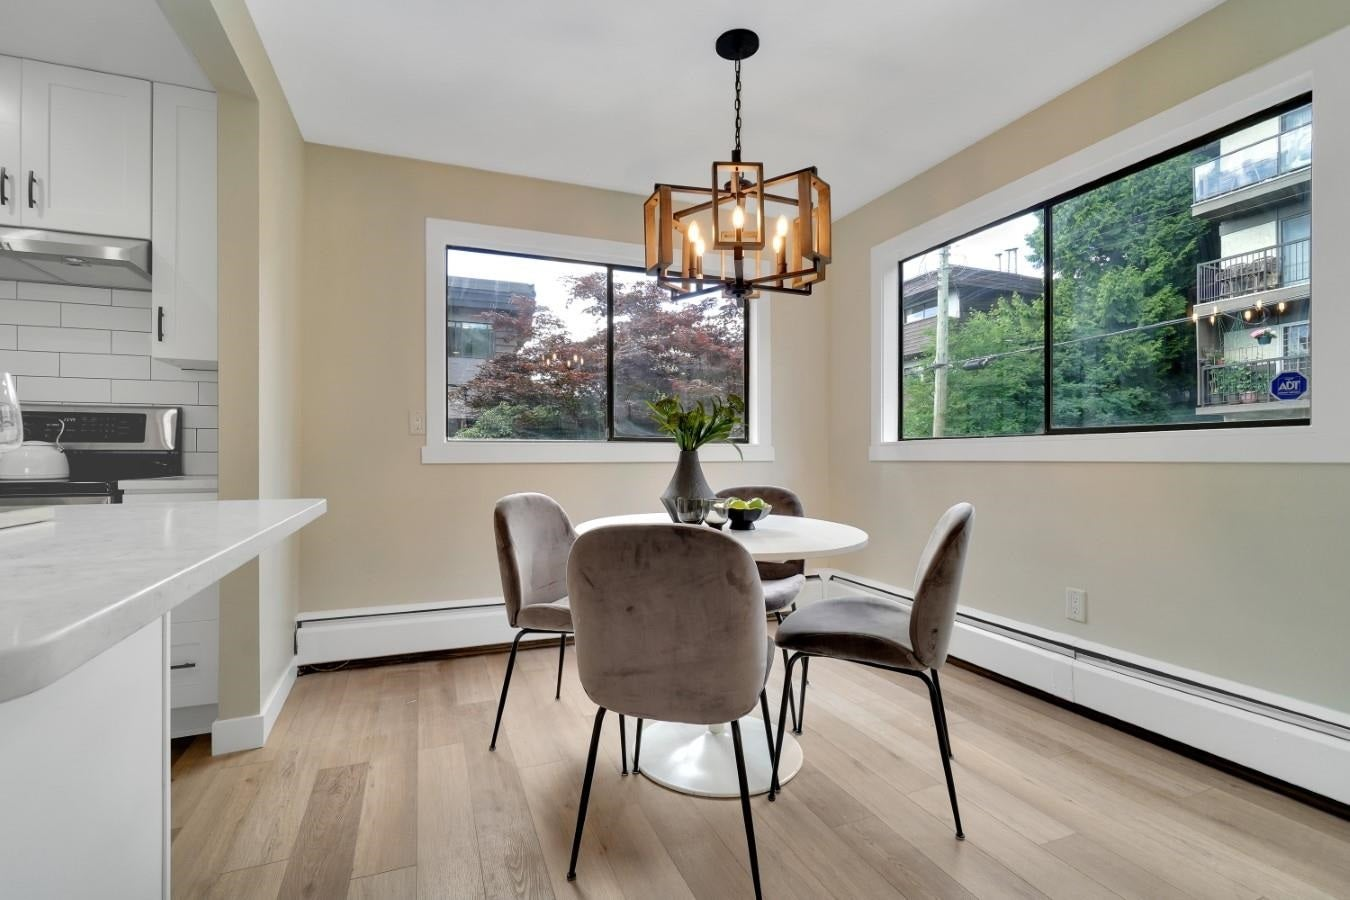 206 330 W 2ND STREET - Lower Lonsdale Apartment/Condo for sale, 2 Bedrooms (R2604160) - #10